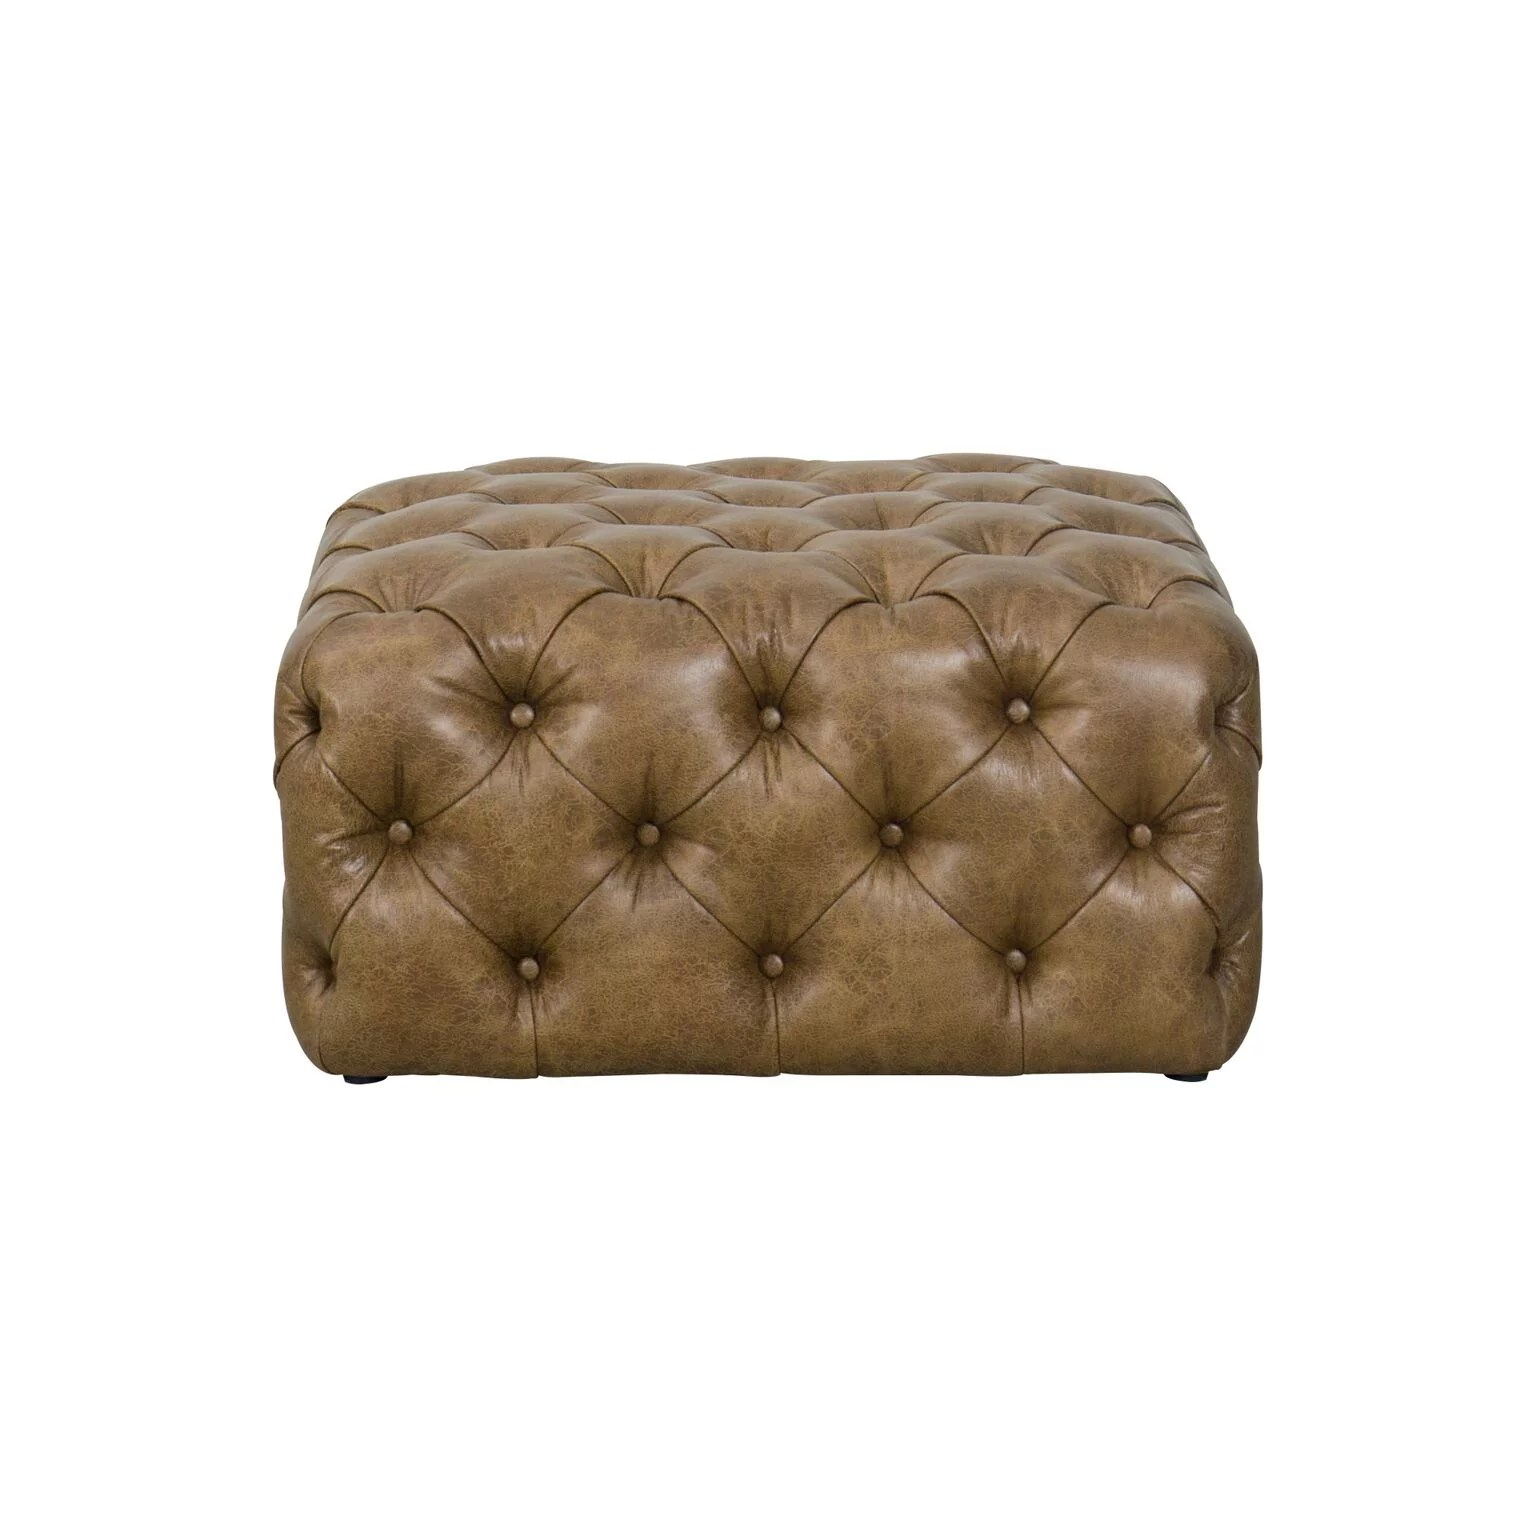 homepop large square tufted ottoman light brown faux leather walmart com